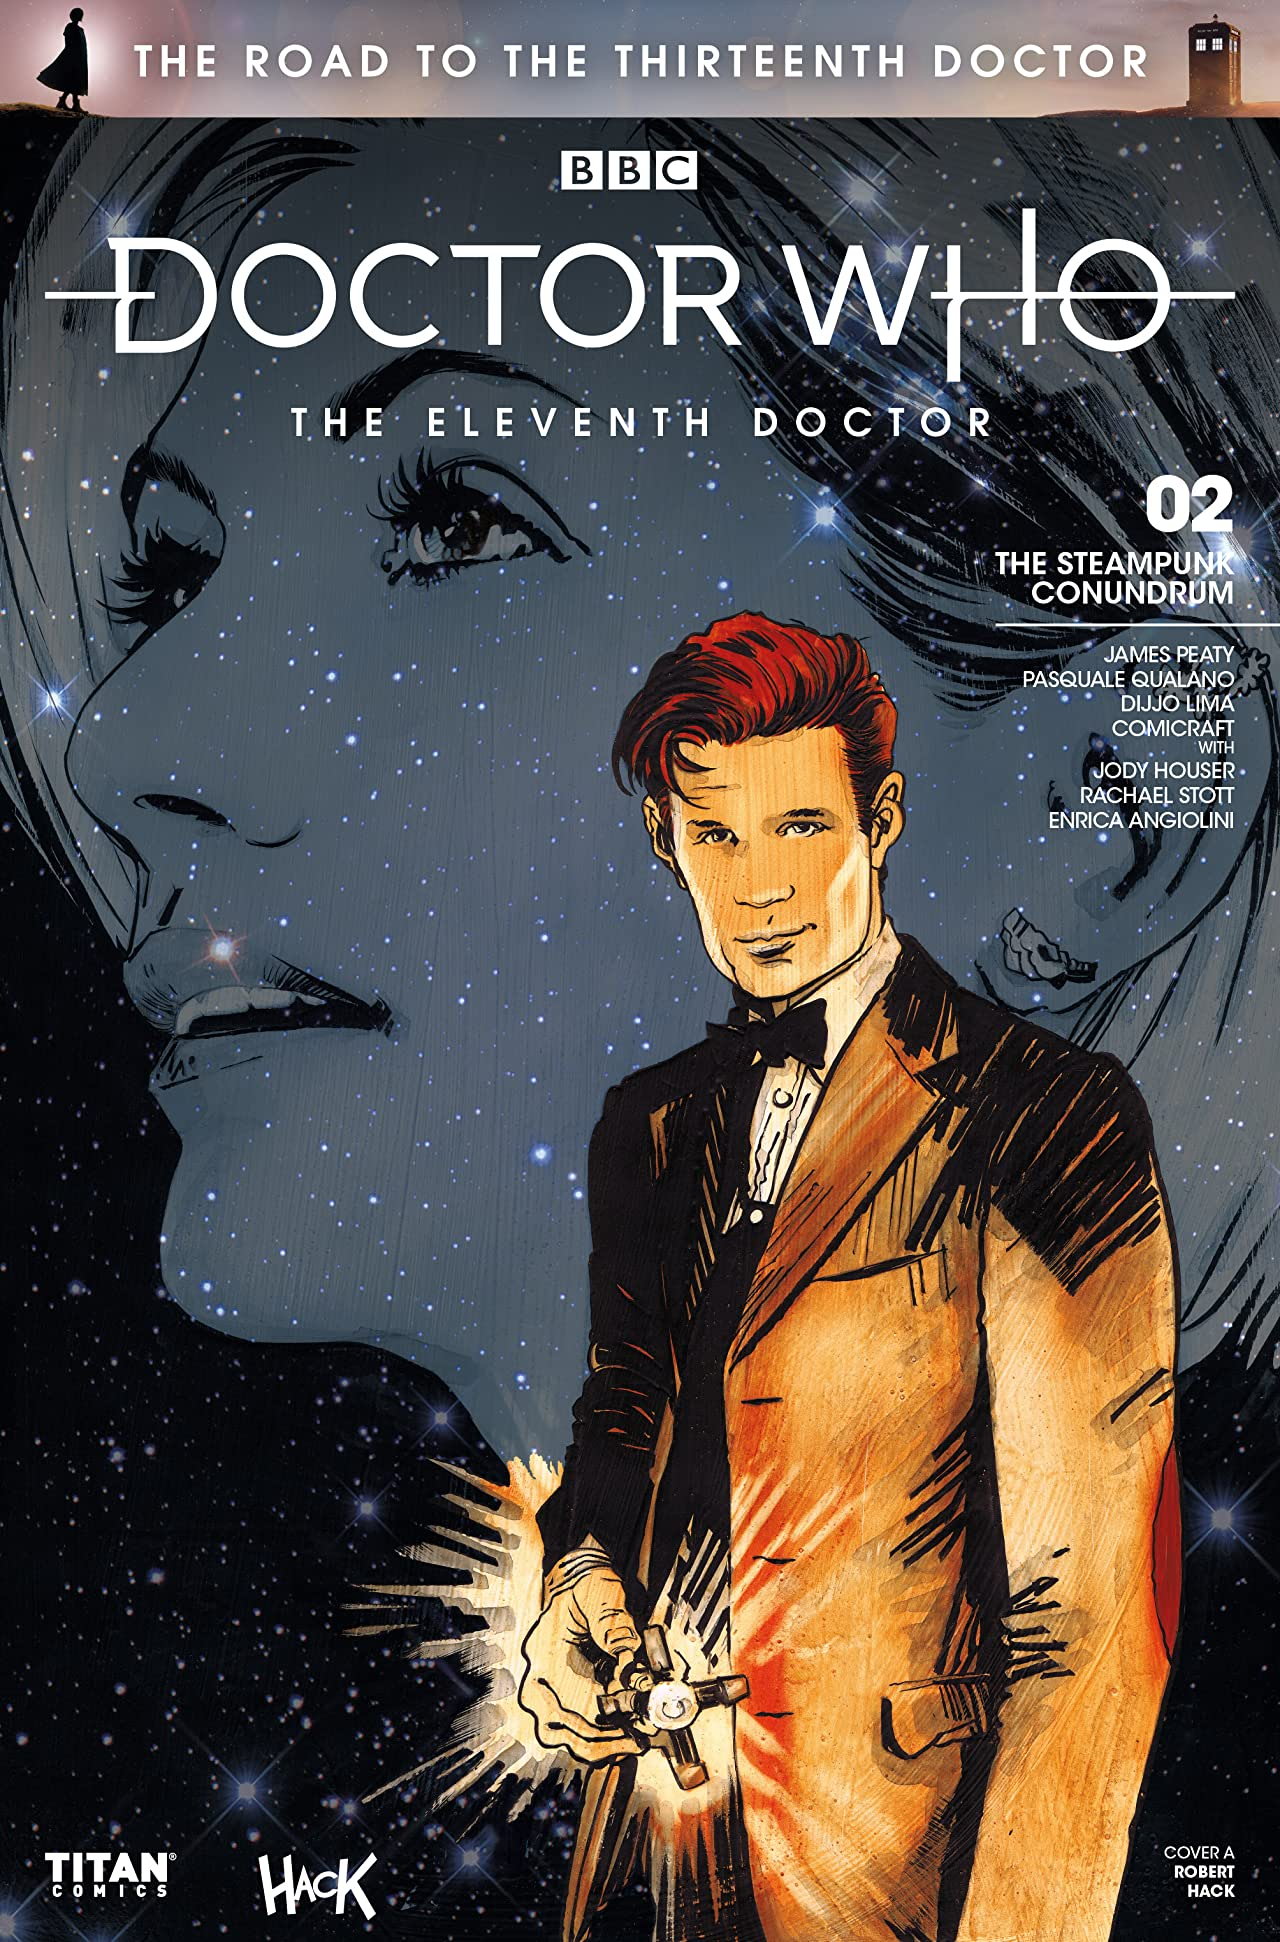 Doctor Who: The Road to the Thirteenth Doctor No.2: The Eleventh Doctor